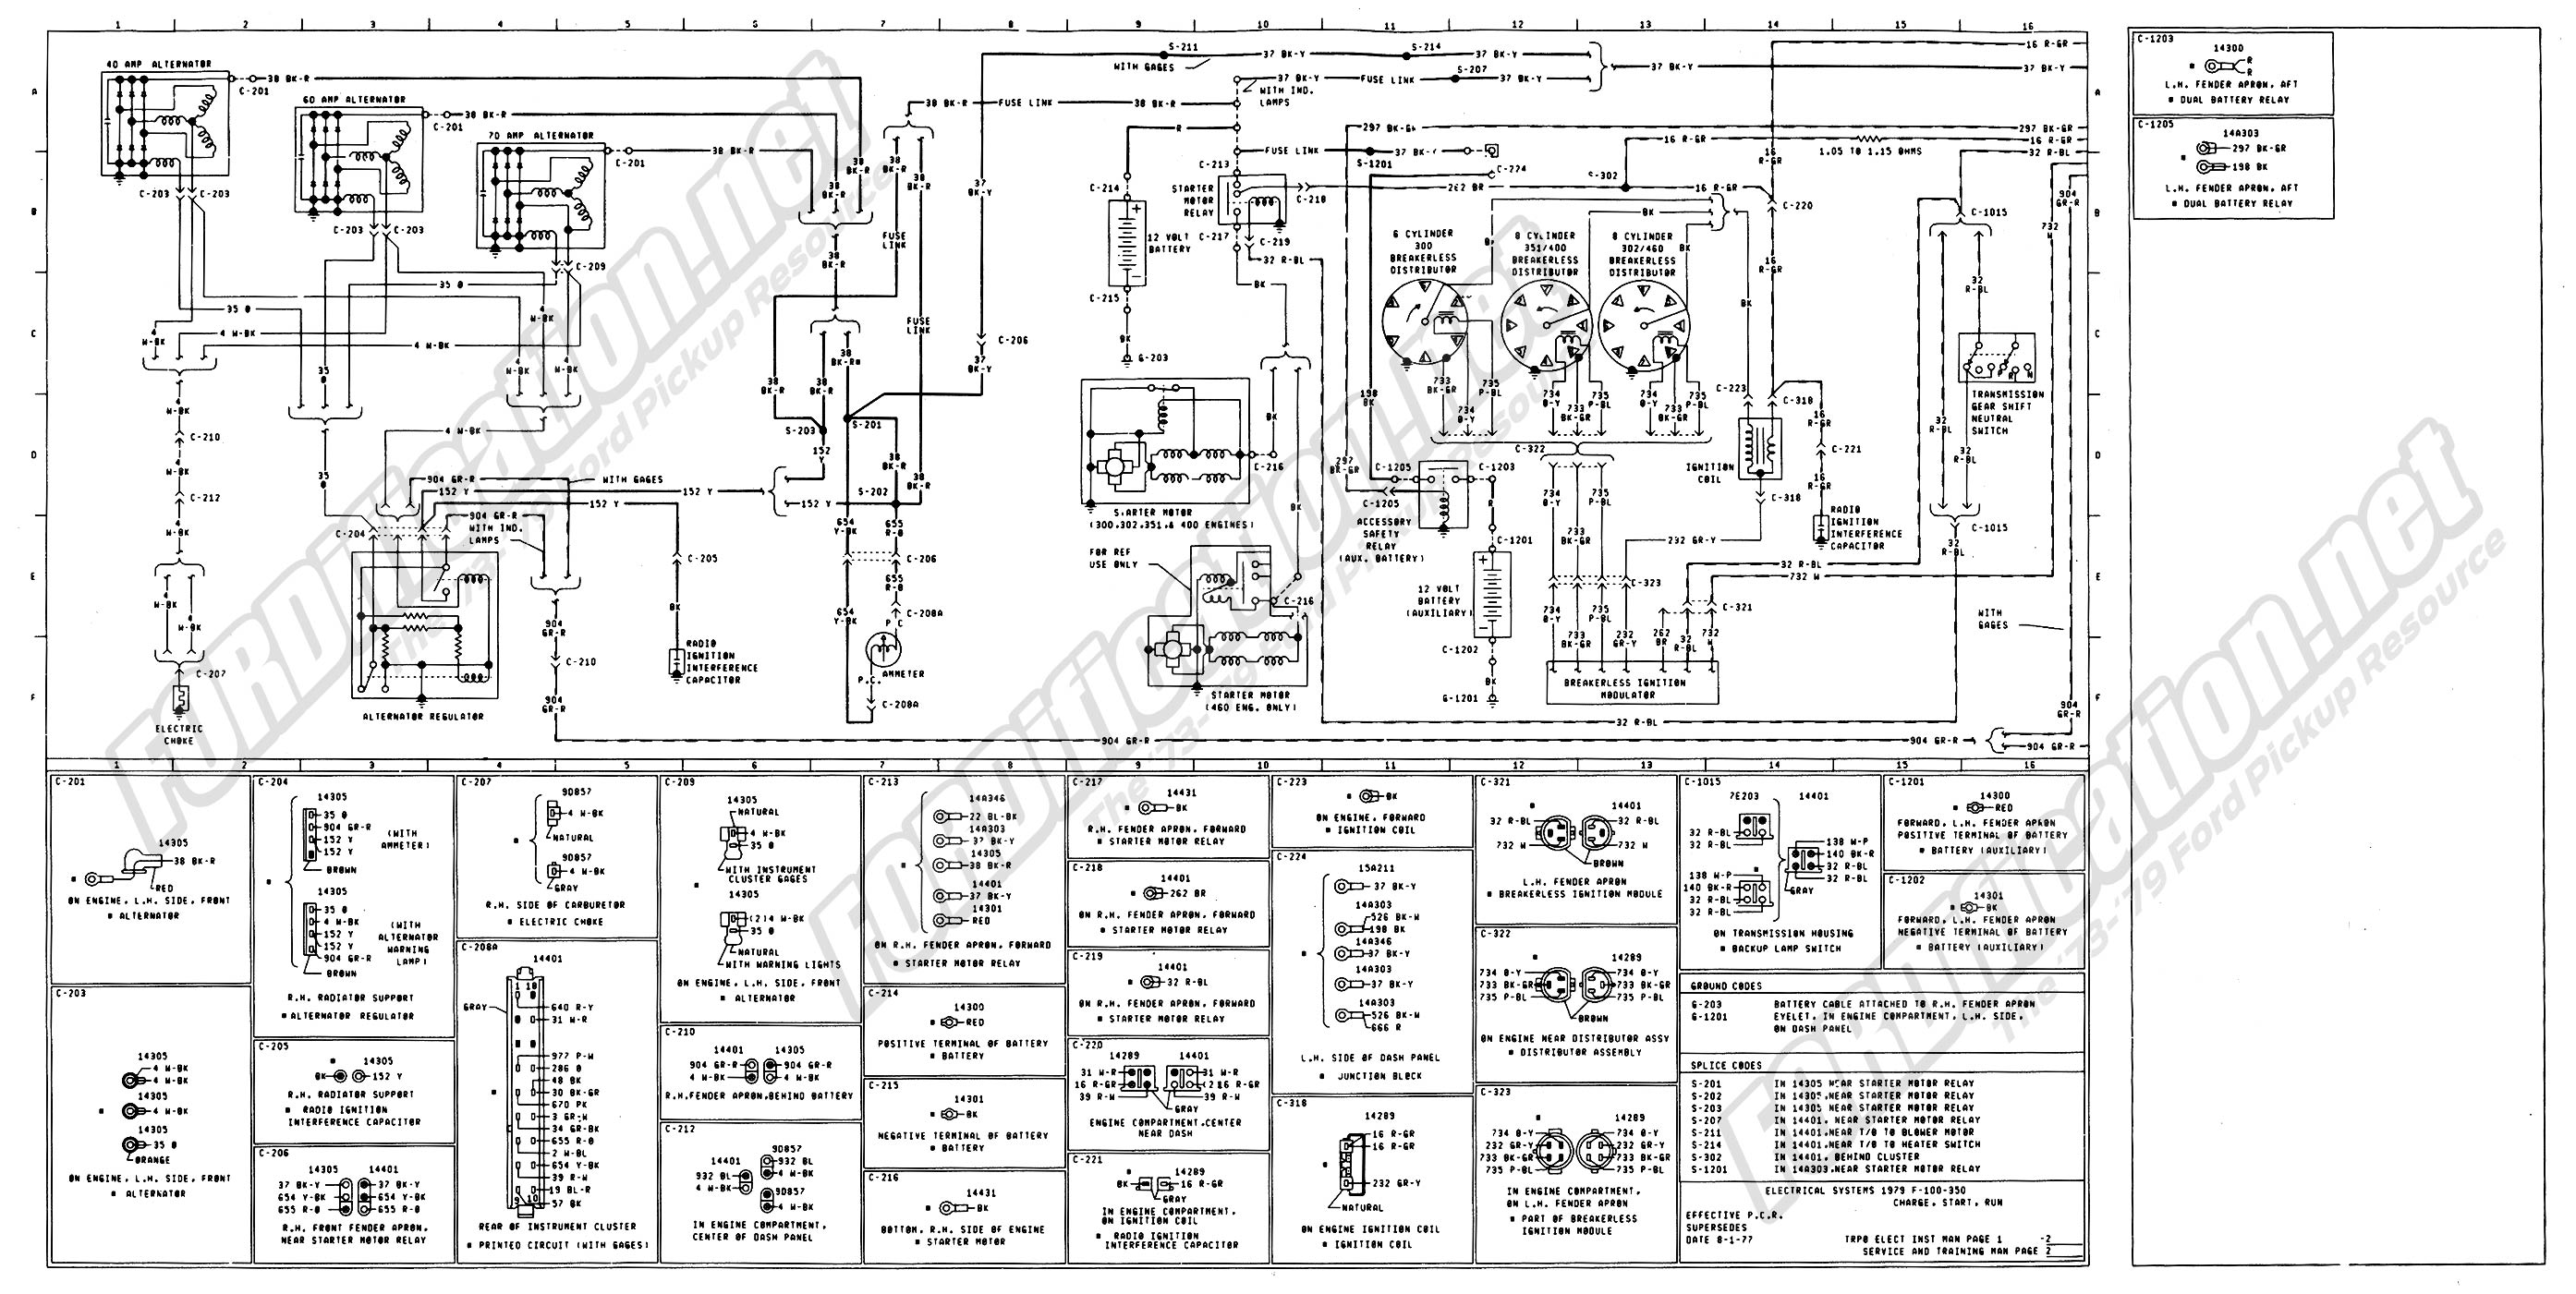 1970 ford truck f600 alternator wiring diagram wiring data rh unroutine co 1967 ford f100 alternator wiring diagram 67 ford f100 alternator wiring diagram